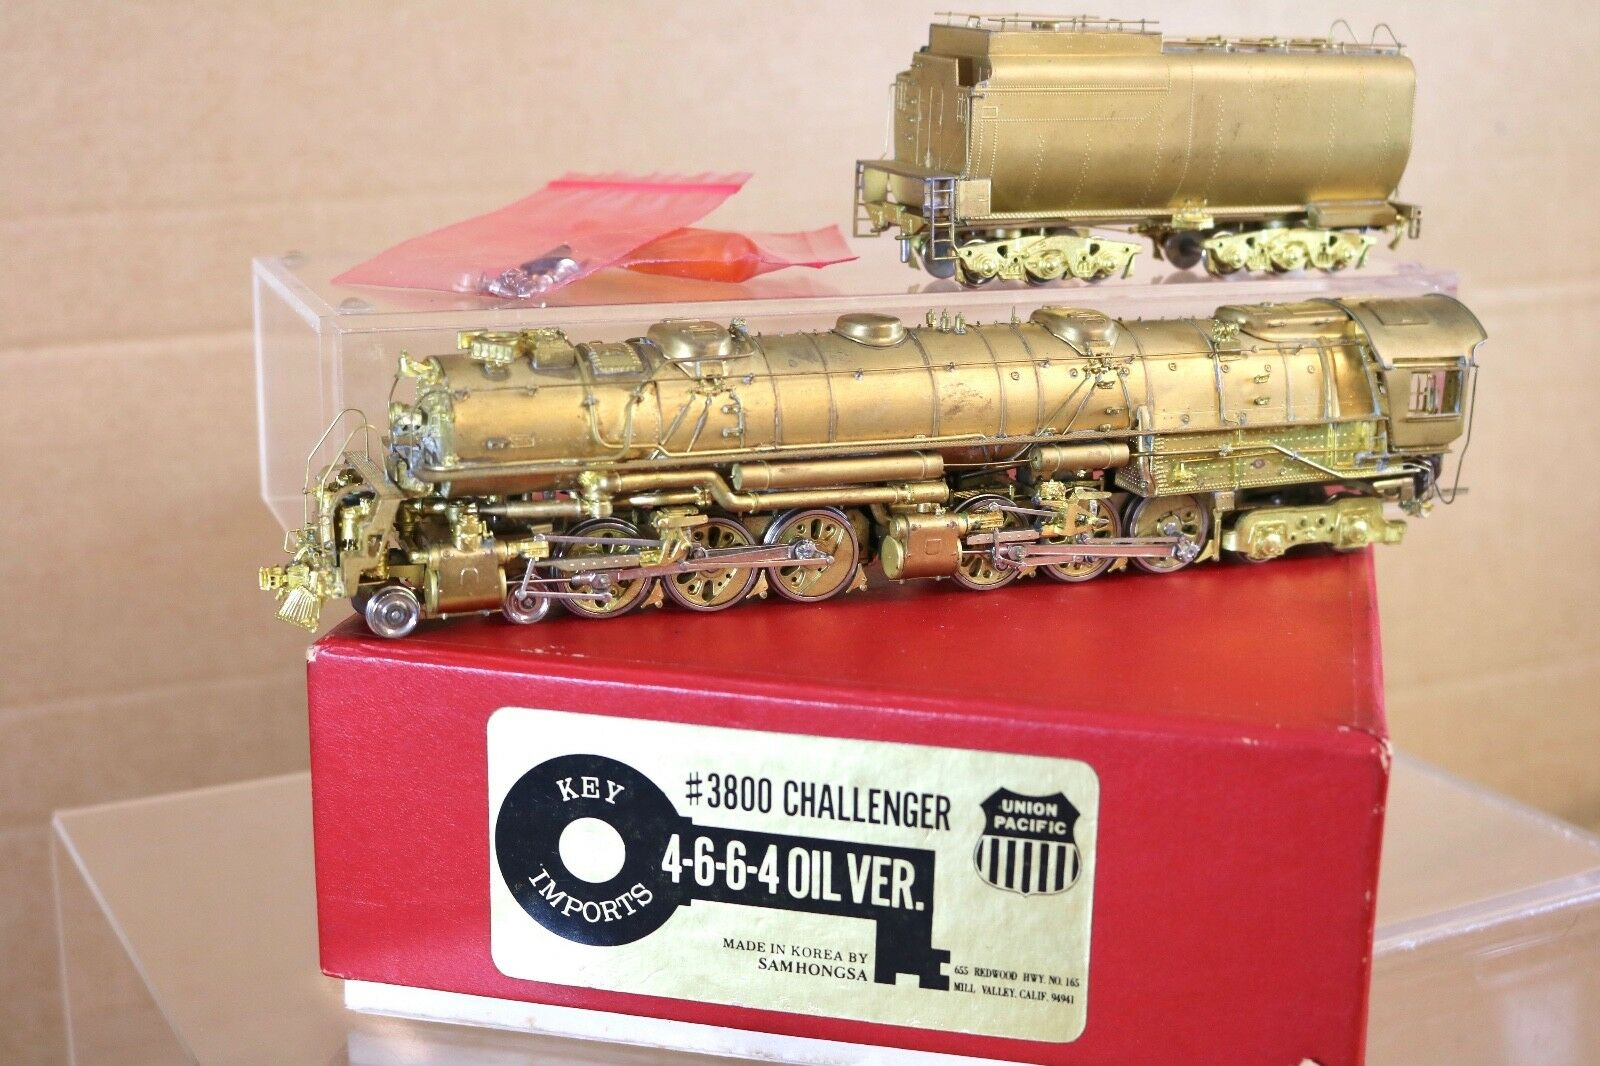 KEY IMPORTS BRASS UNION PACIFIC UP 4-6-6-4 OIL VERSION 3800 CHALLENGER LOCO np